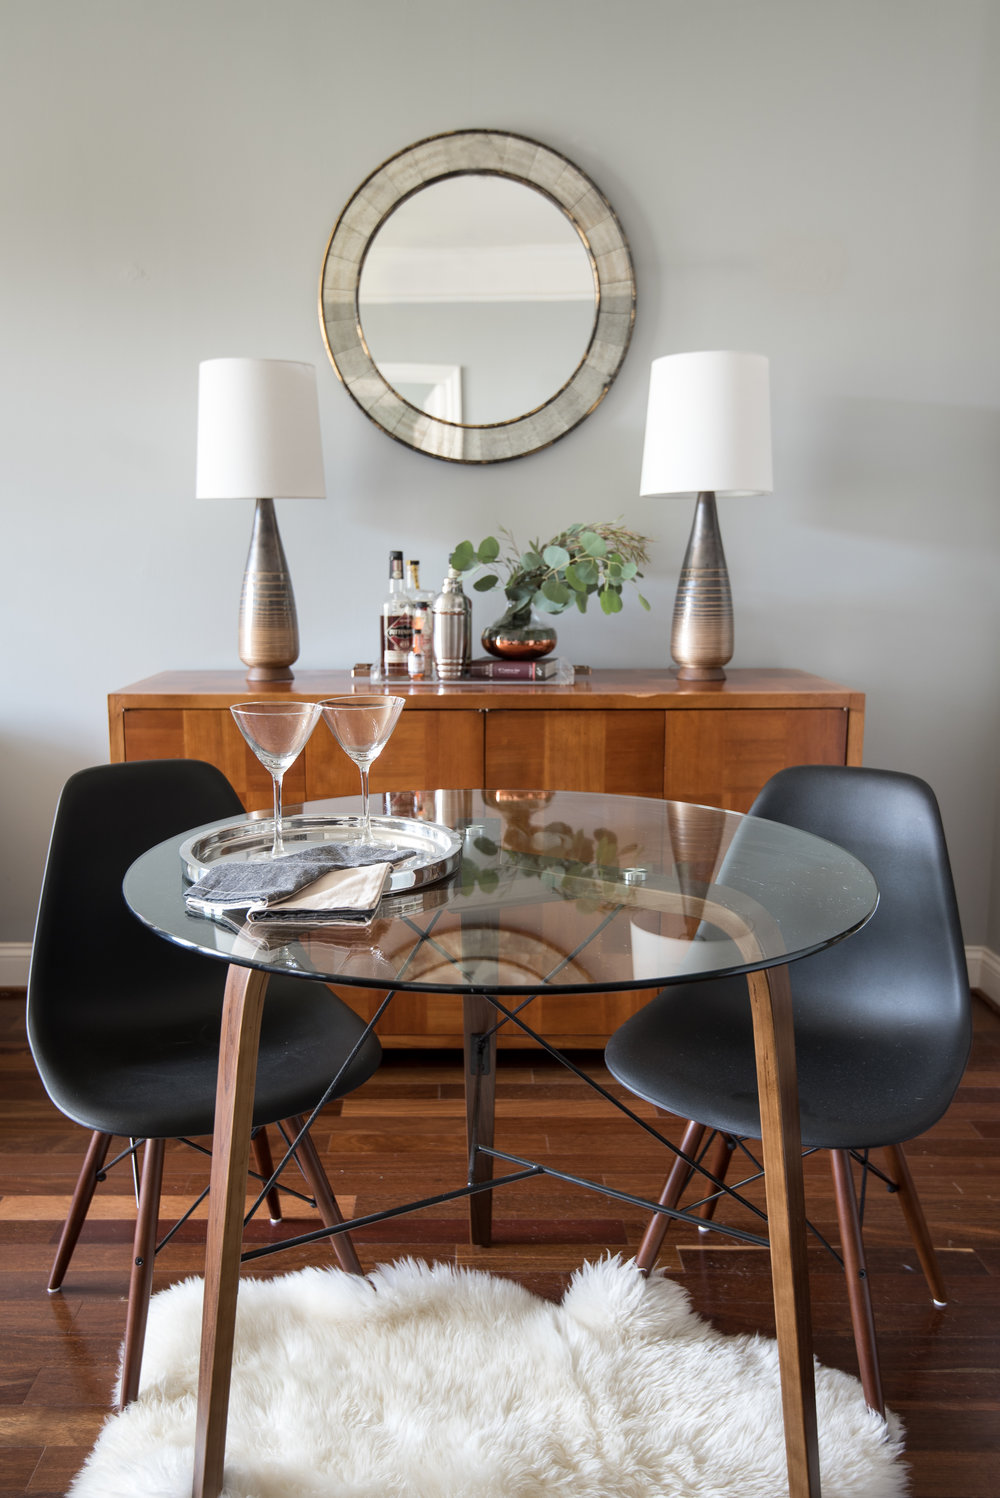 mariella-cruzado-splendor-styling-small-dining-room